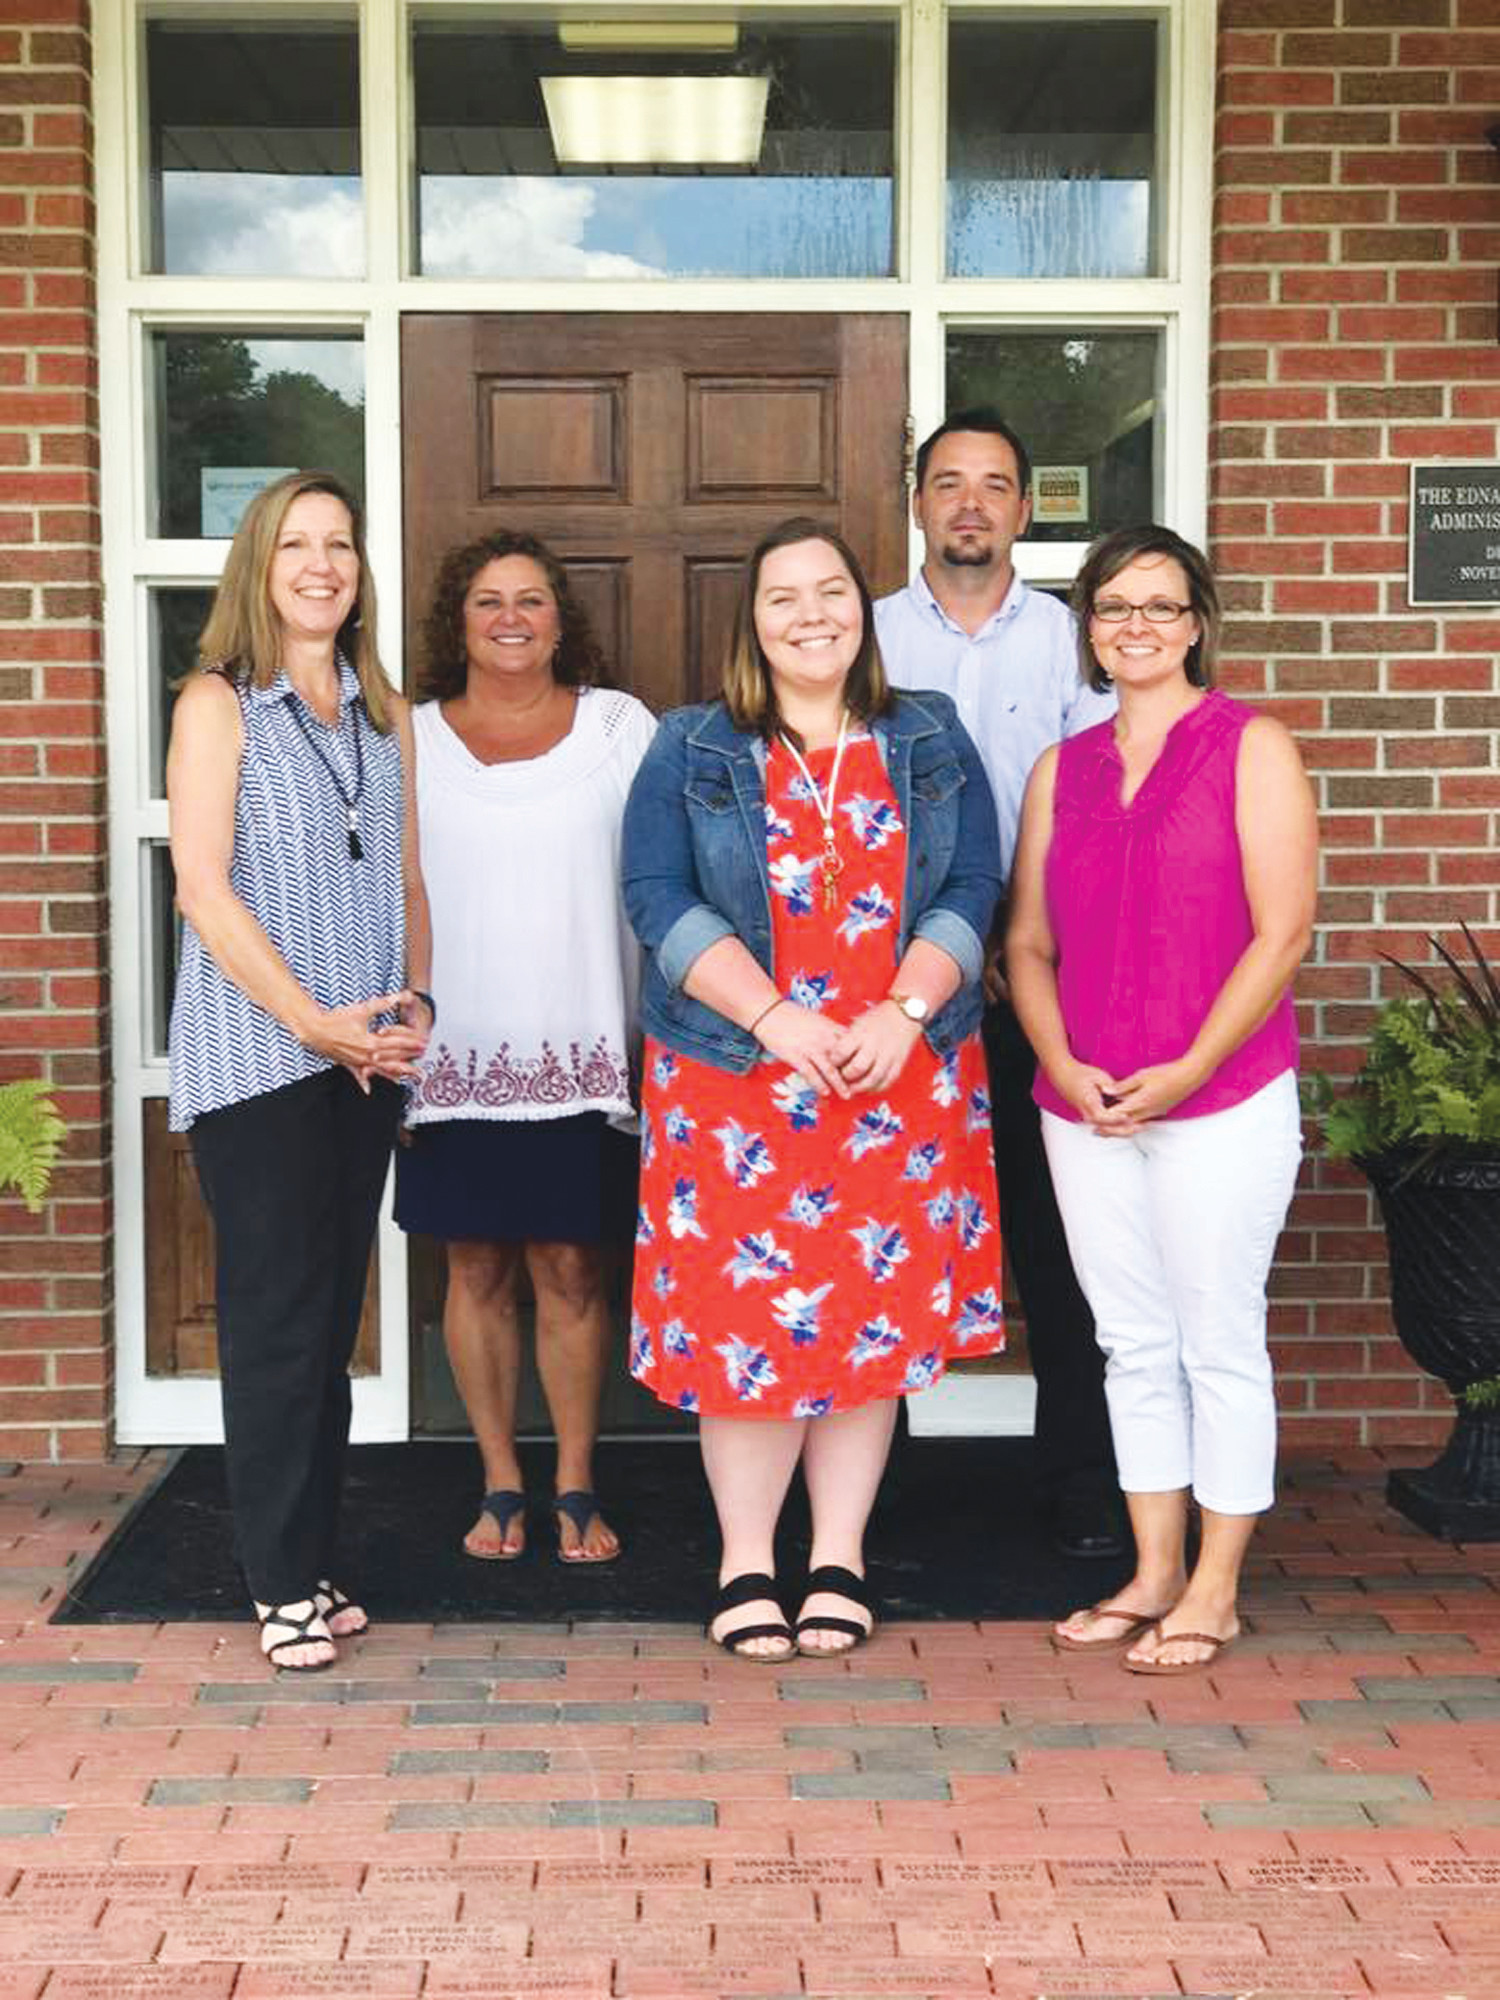 New staff welcomed  Clarendon Hall welcomes new staff members for the 2017-18 school year: Karen Schwendinger, high school science; Melissa Moorer, high school English; Kelsey Steele, sixth and seventh grade; Anthony Reitenour, pre-calculus/coach; and Alison Ridgeway, second grade.